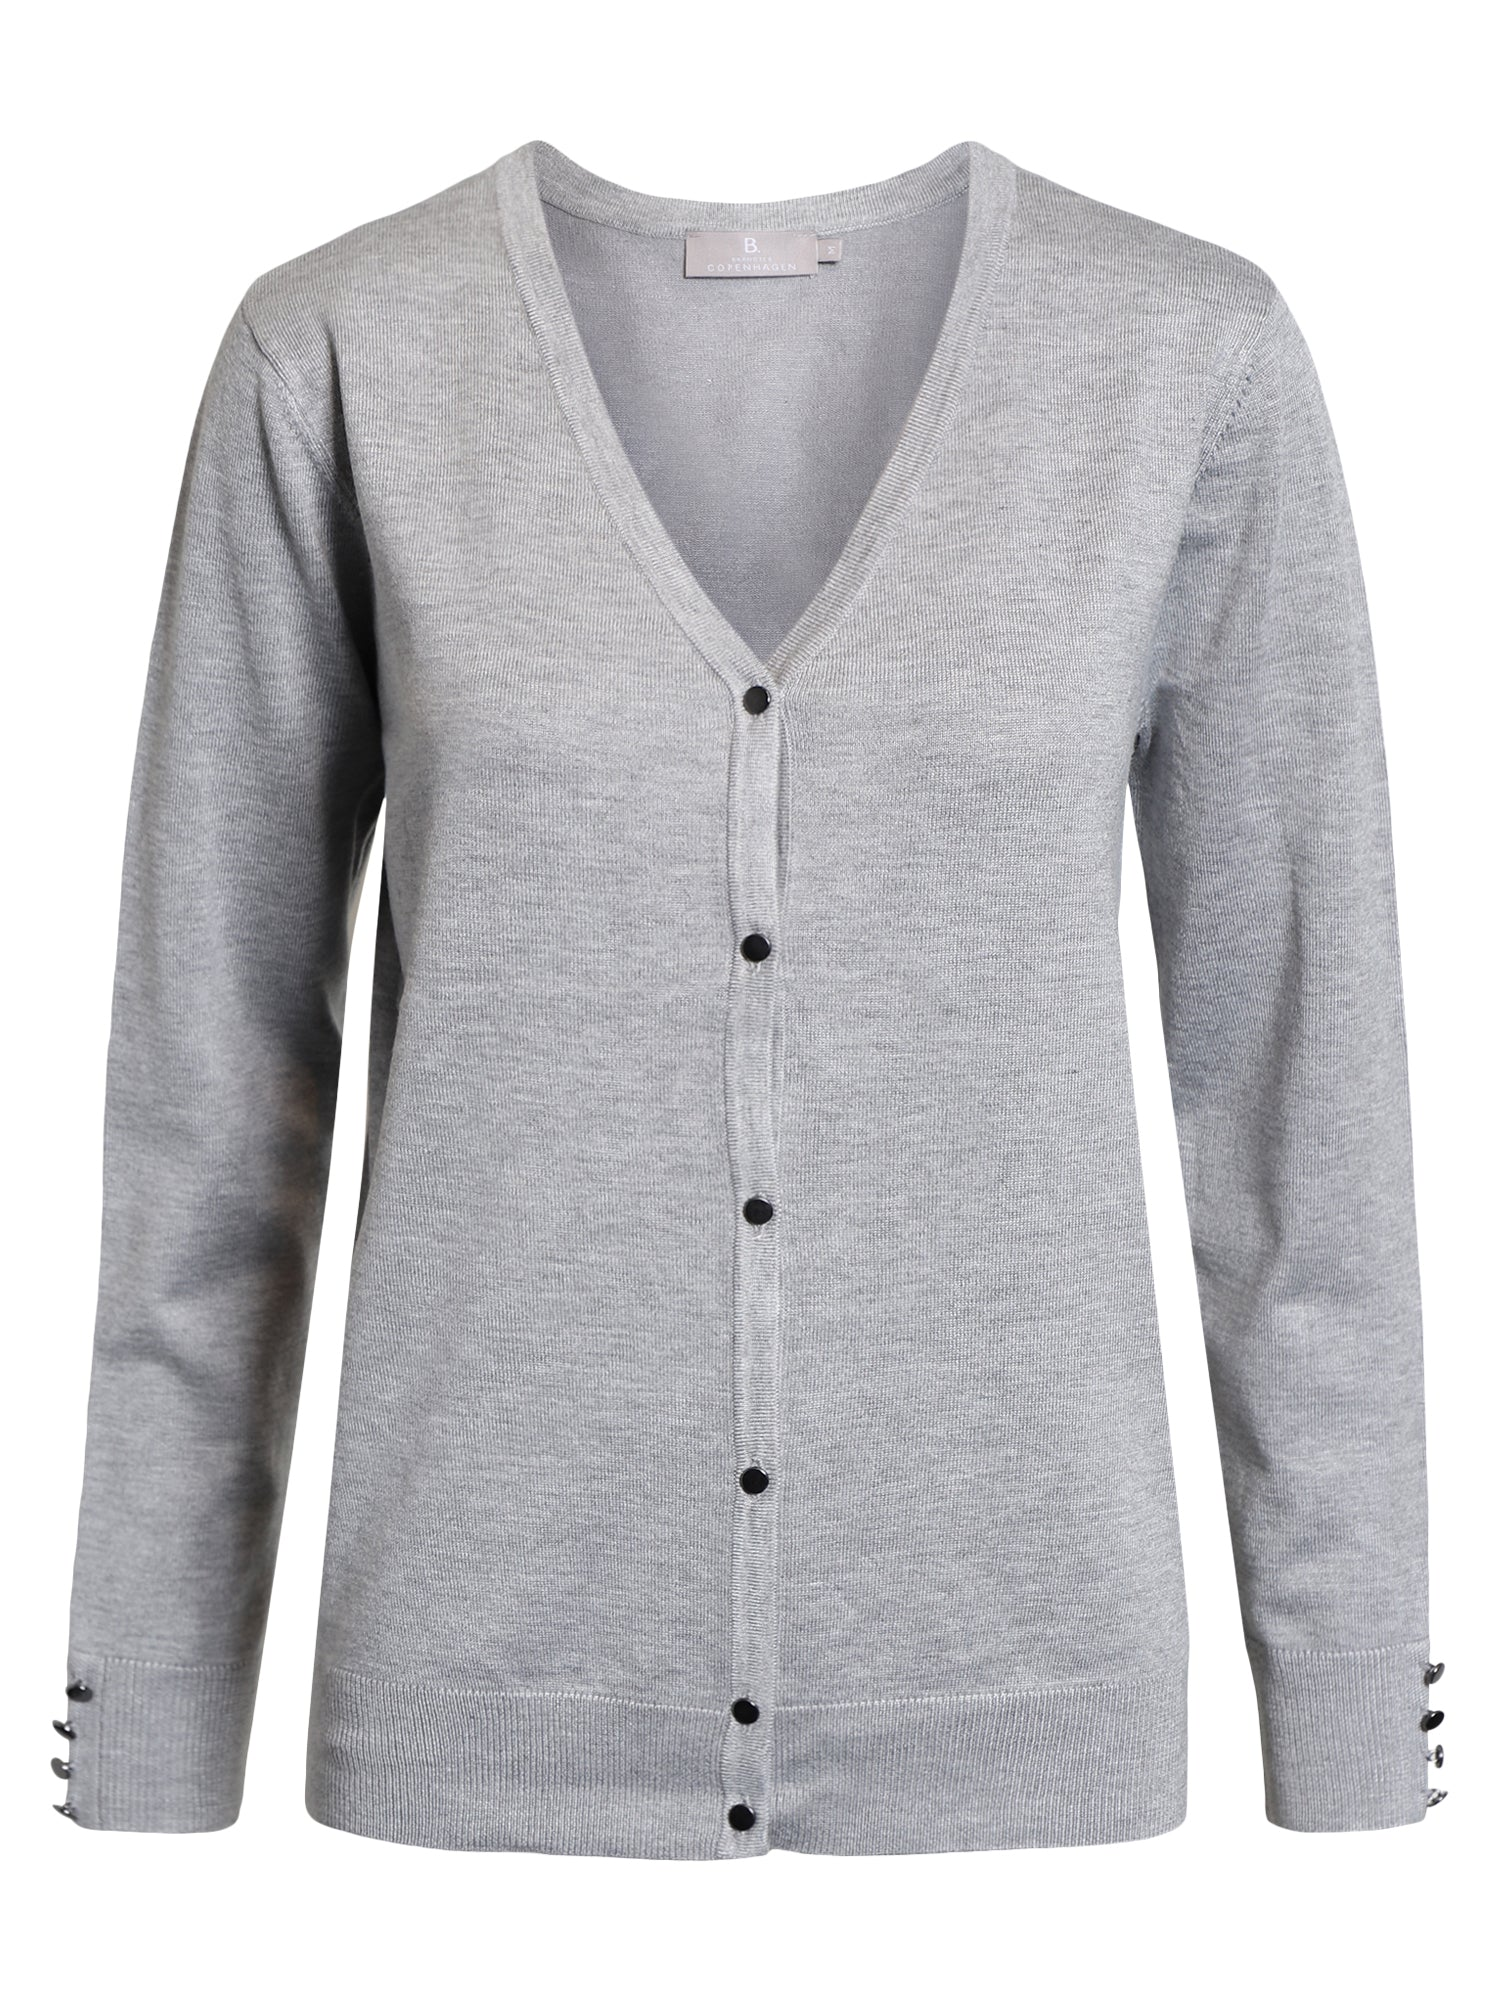 Image of   Cardigan med V-halsudskæring - Light Grey Melange